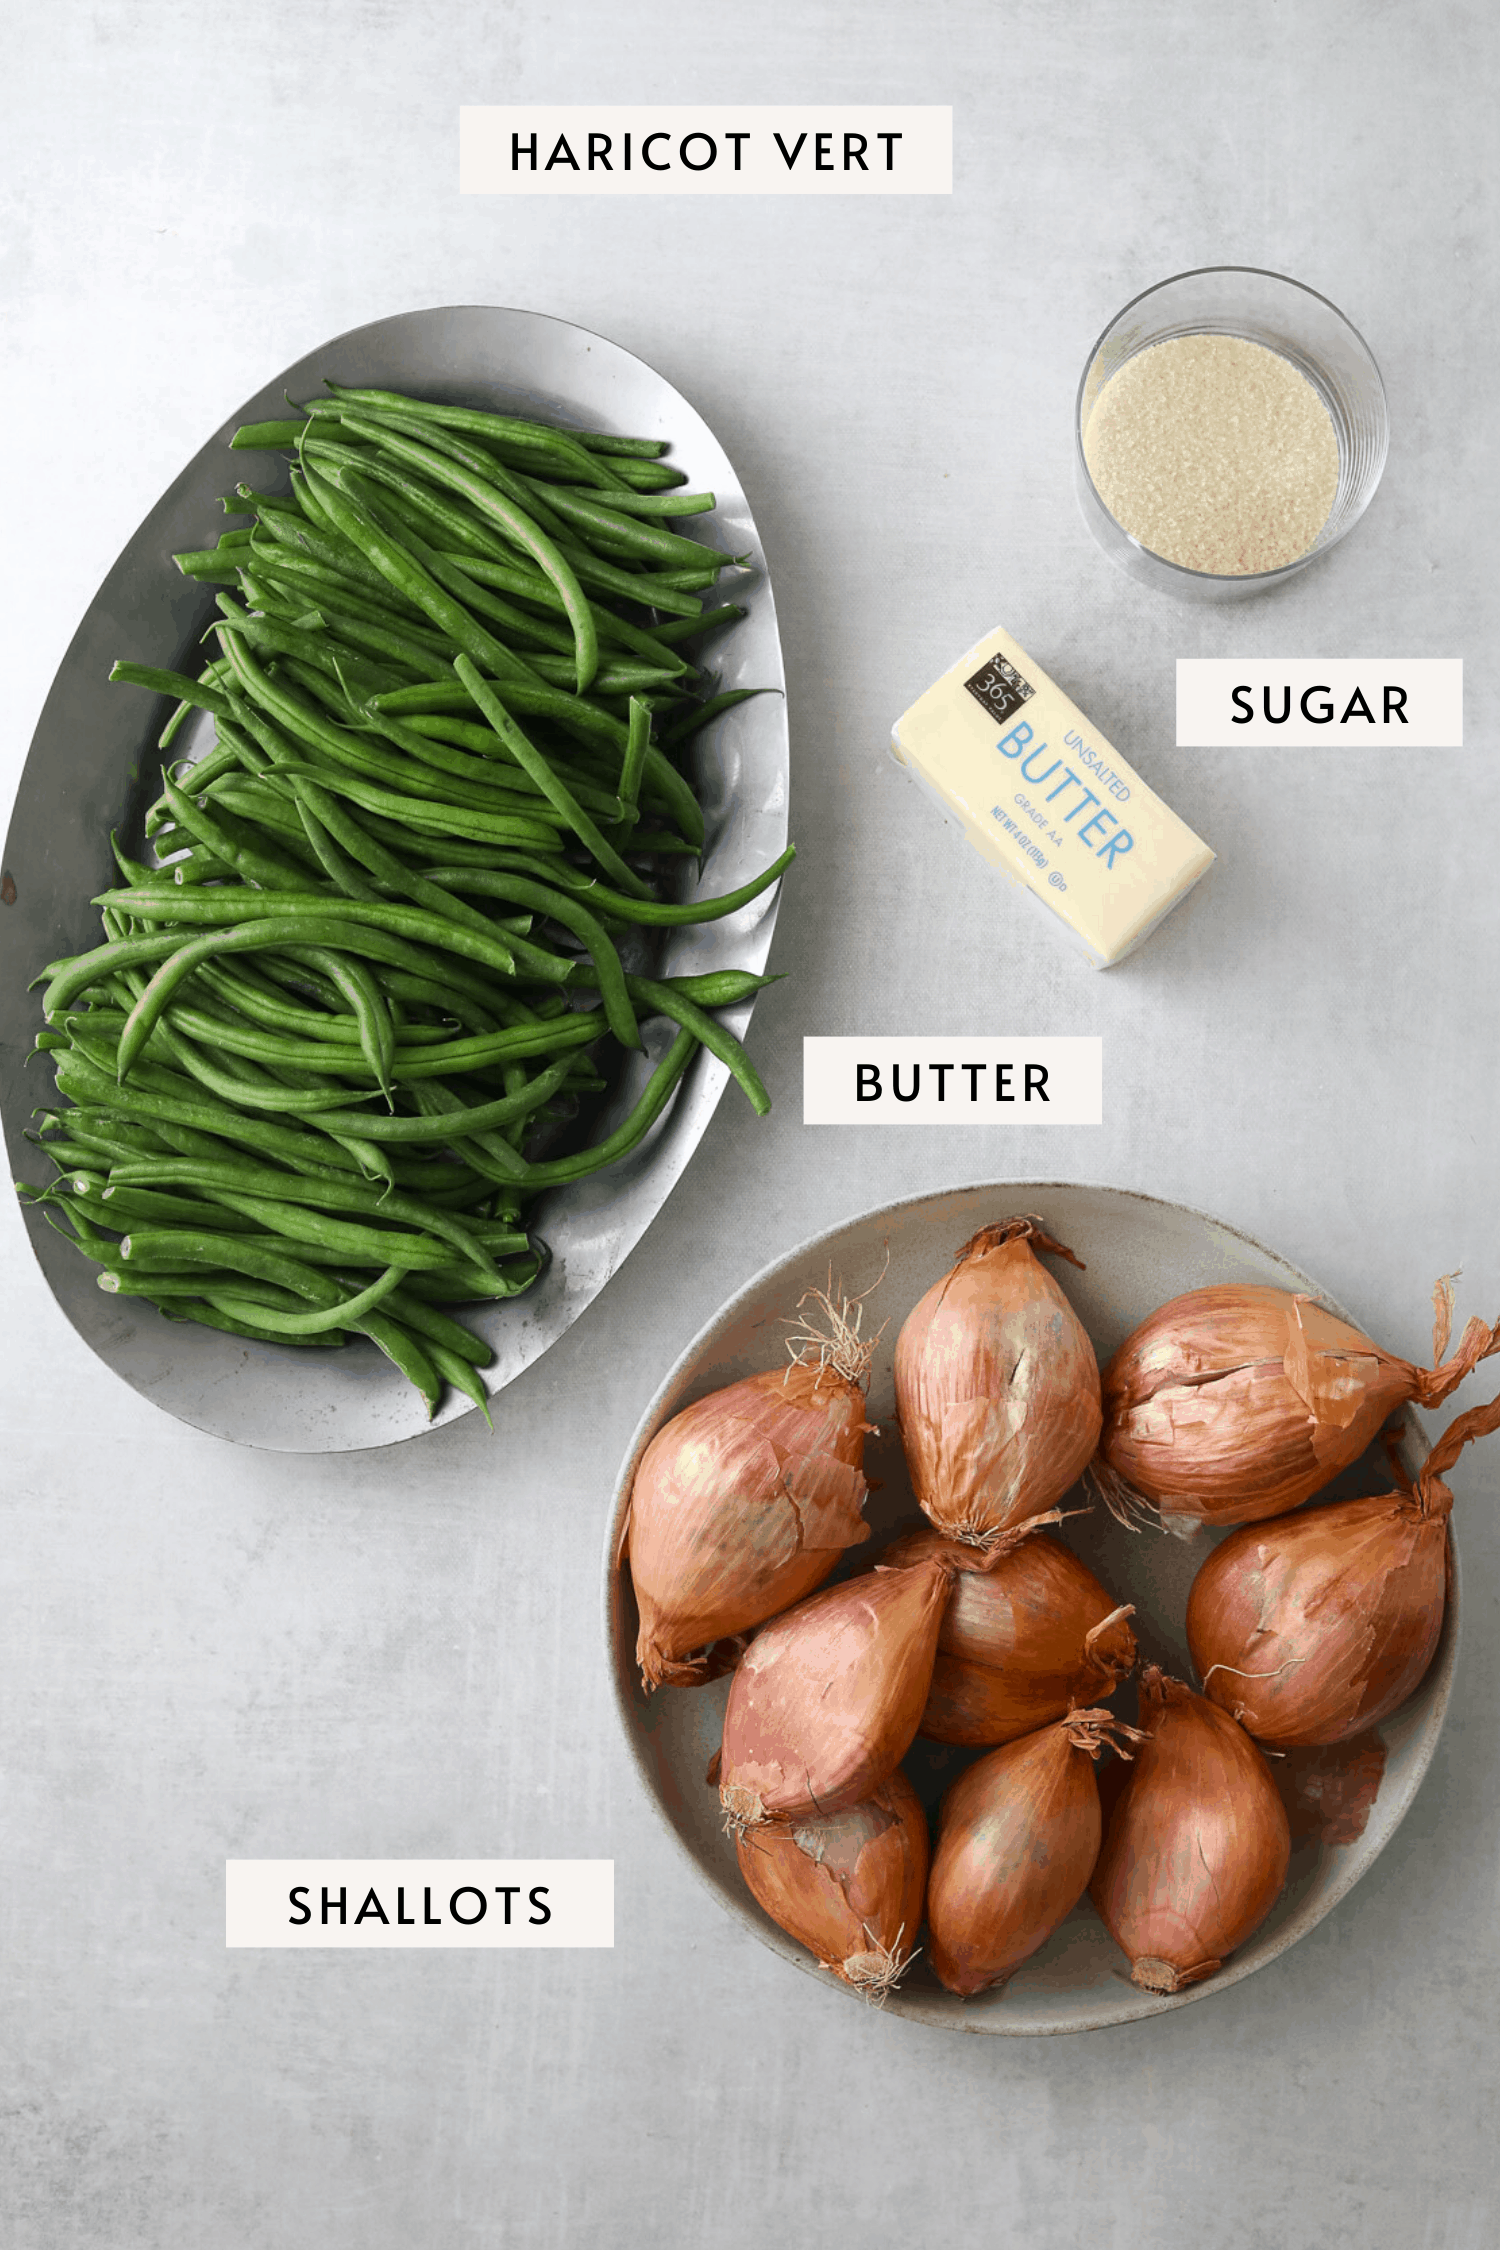 a bowl of shallots, french green beans on a sliver tray a stick of butter and small bowl of sugar